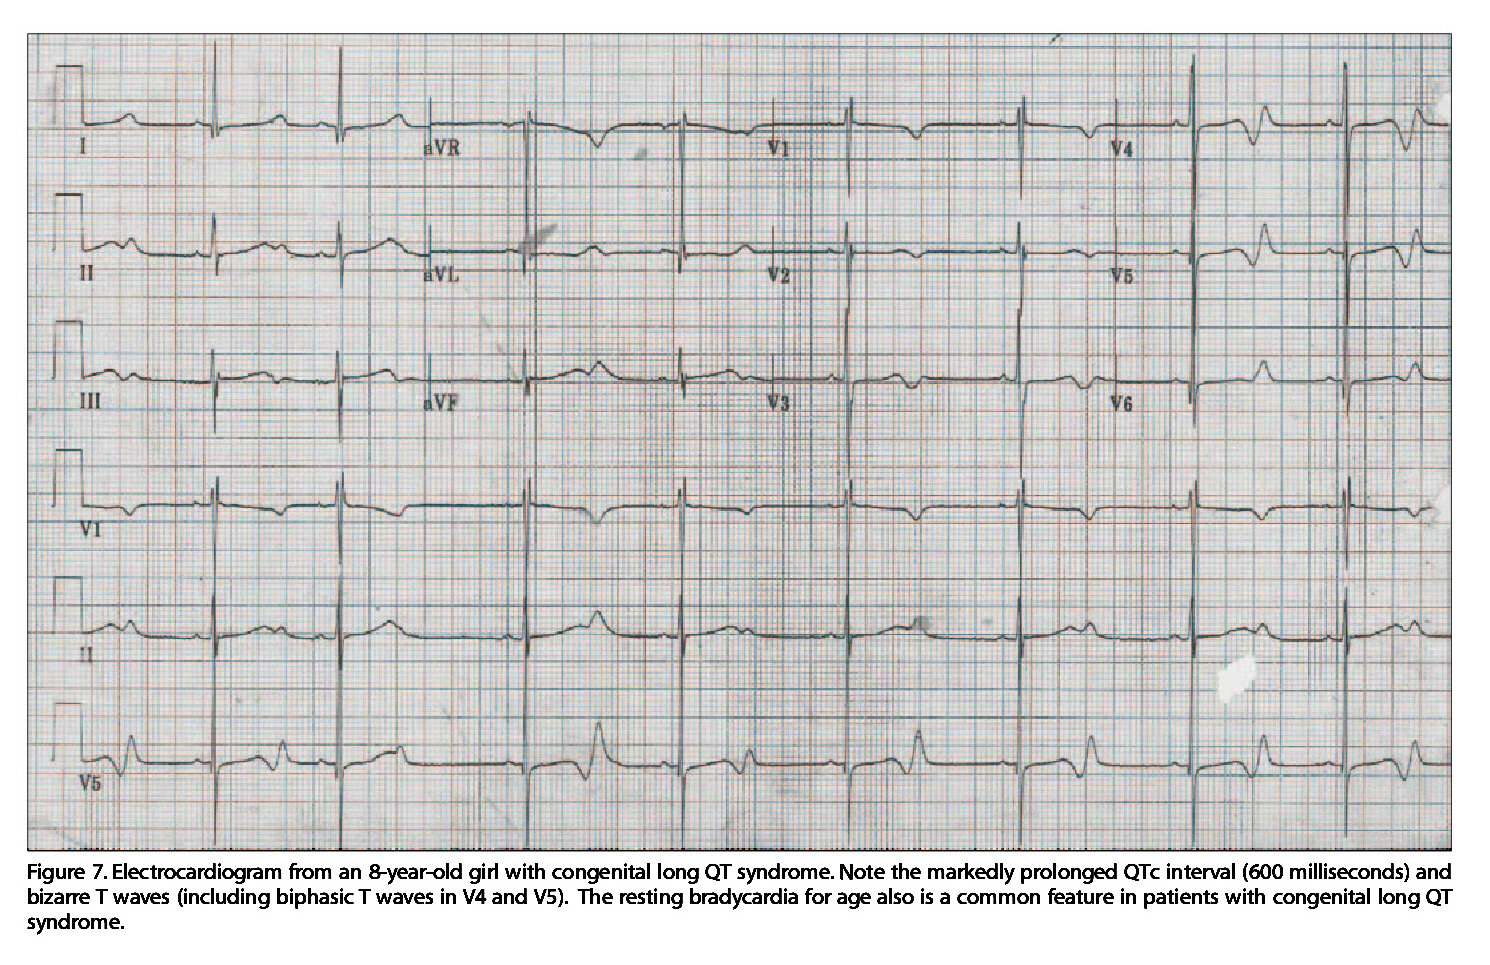 Figure 7. Electrocardiogram from an 8-year-old giri with congenital long QT syndrome. Note the markedly prolonged QTc interval (600 milliseconds) and bizarre T waves (including biphasic T waves in V4 and V5). The resting bradycardia for age also is a common feature in patients with congenital long QT syndrome.